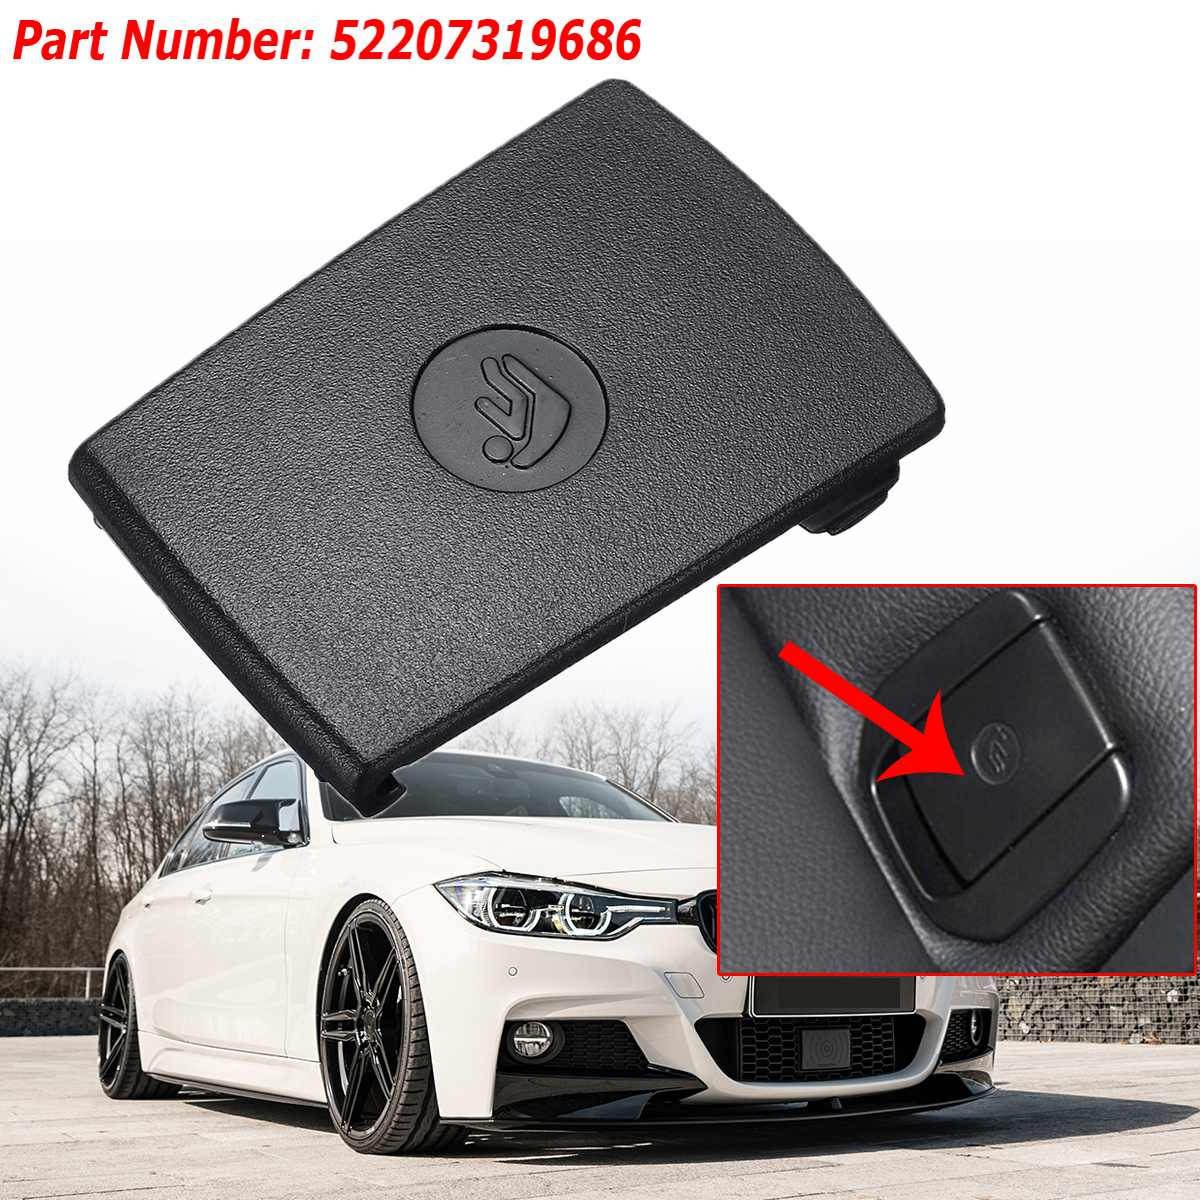 1x Universal Car Rear Child Seat Anchor Safety ISOFix Cover Trim Child Restraint For BMW F30 F31 3-Series F20 F21 F22 F80 M3 F34